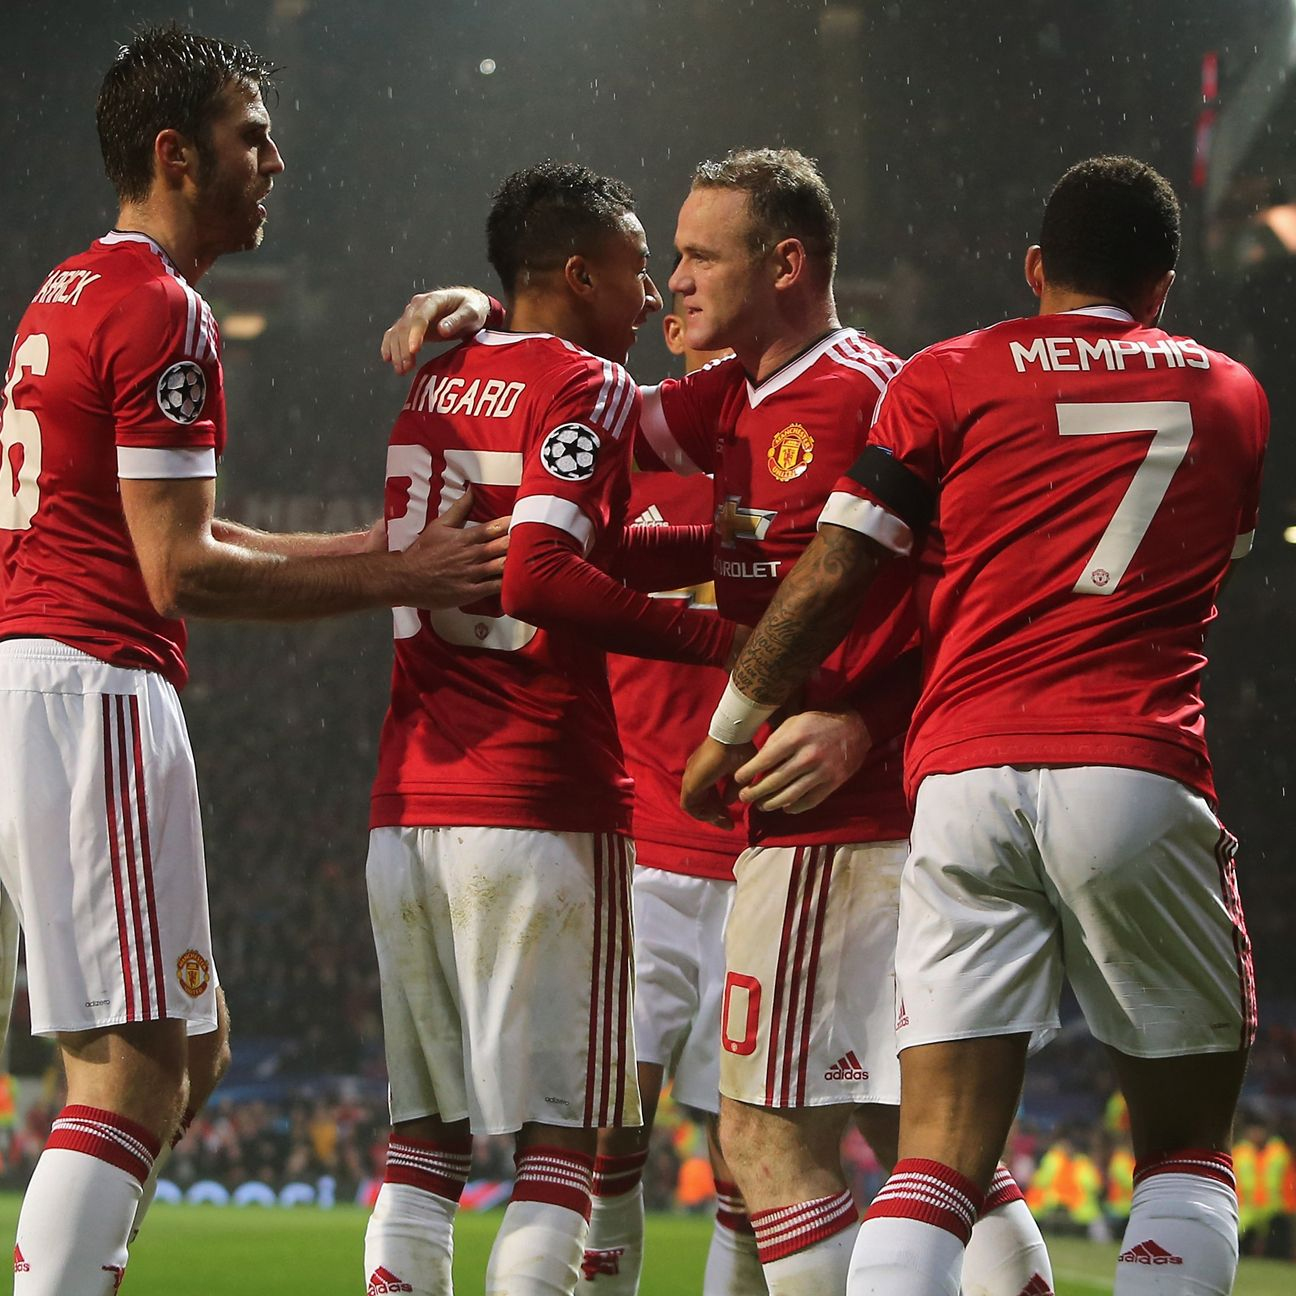 Can Manchester United pull off a win over upstart Leicester City?